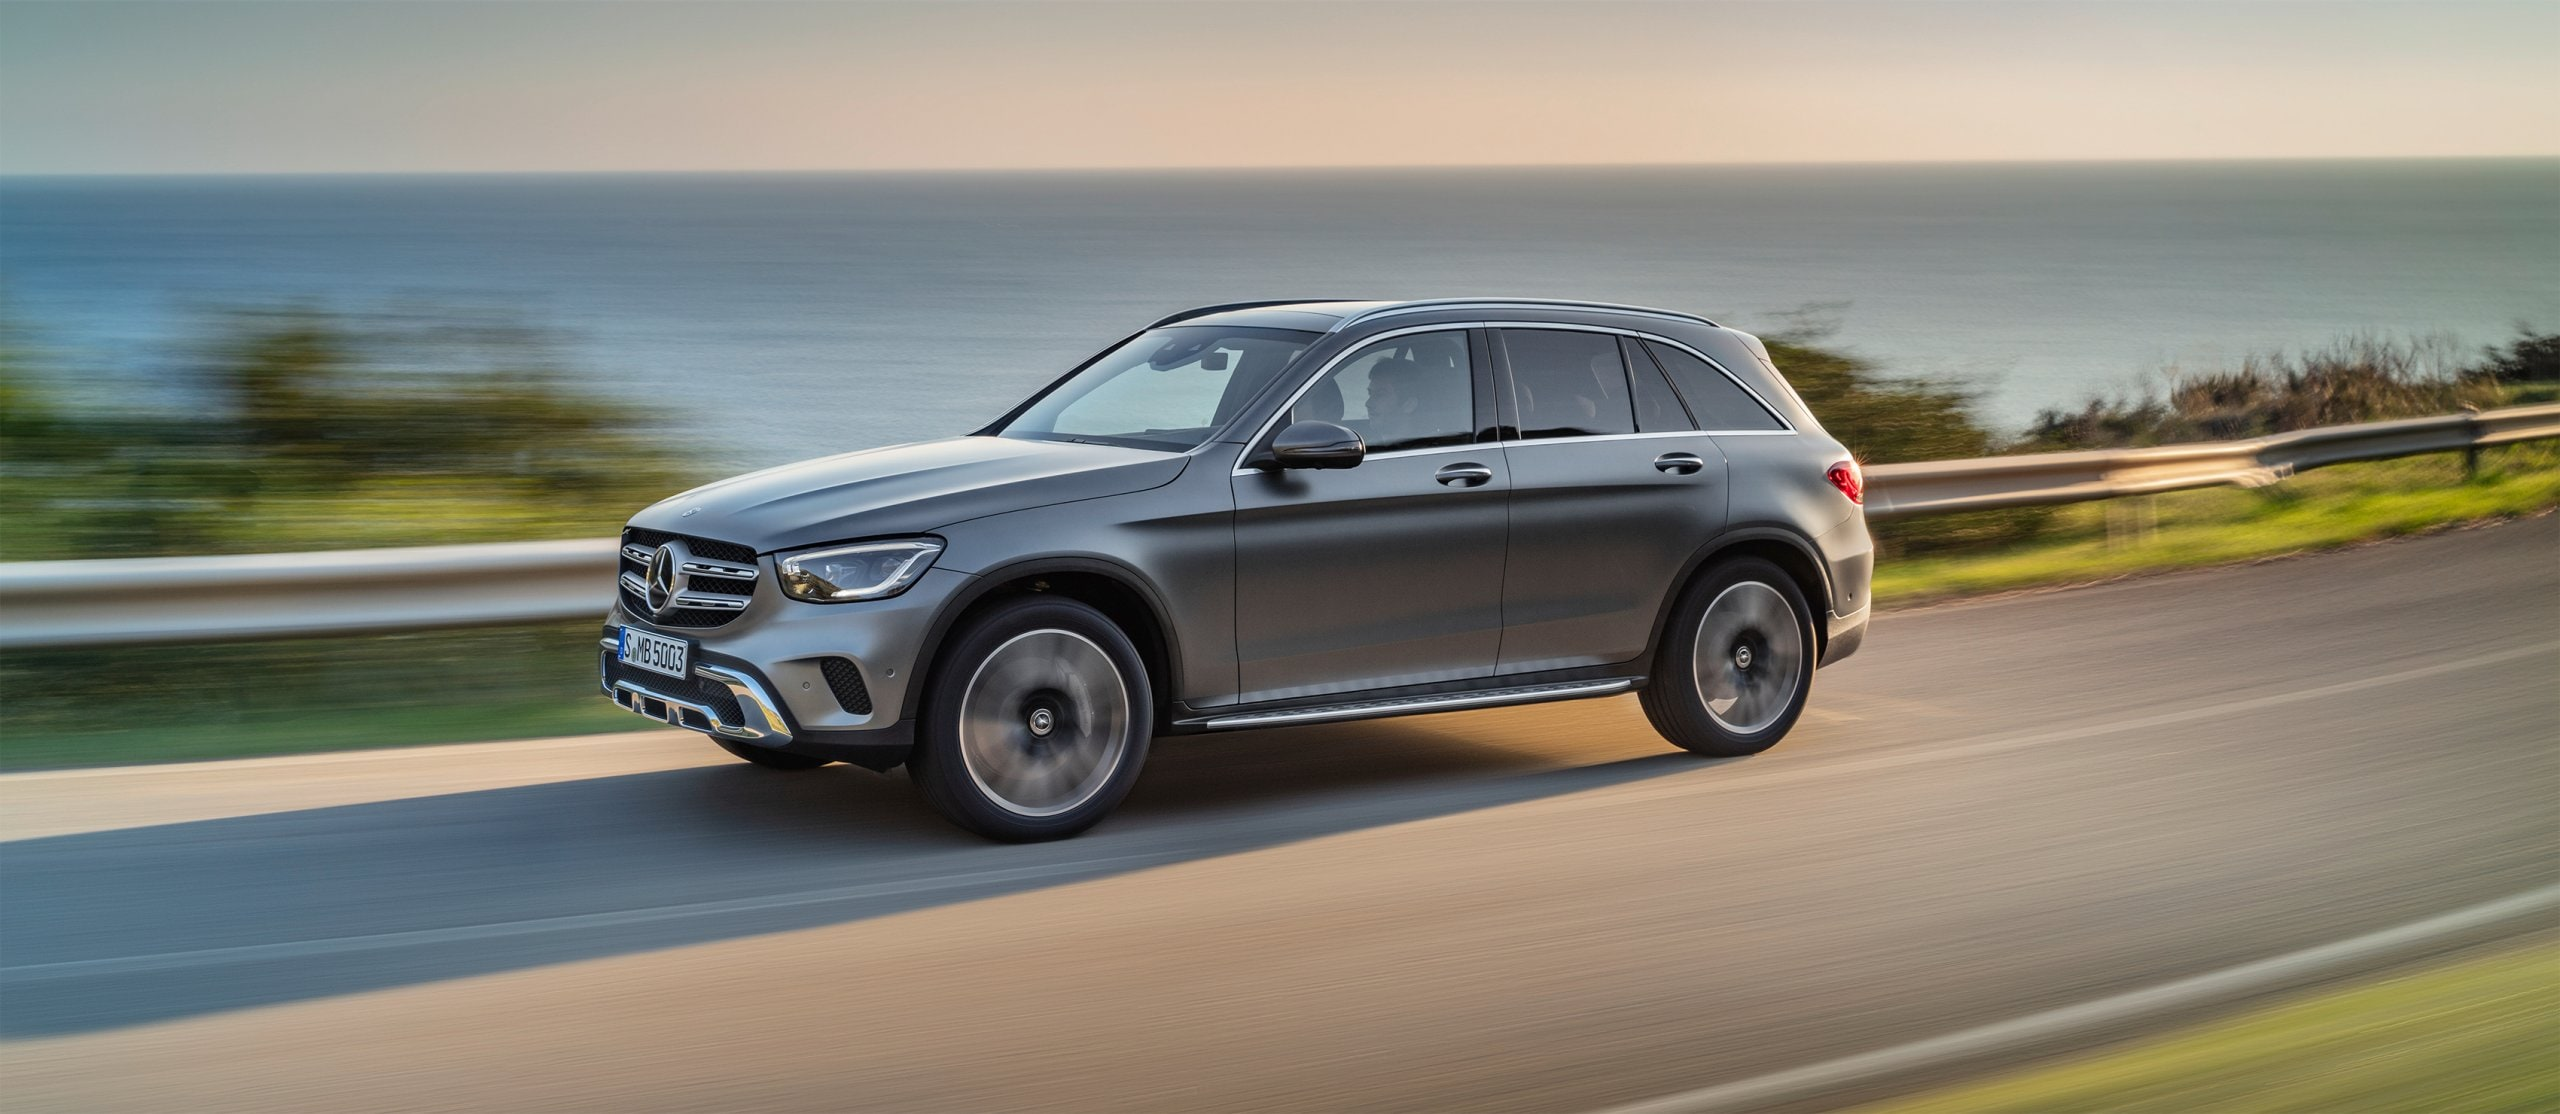 Mercedes Glc Spy Shoot